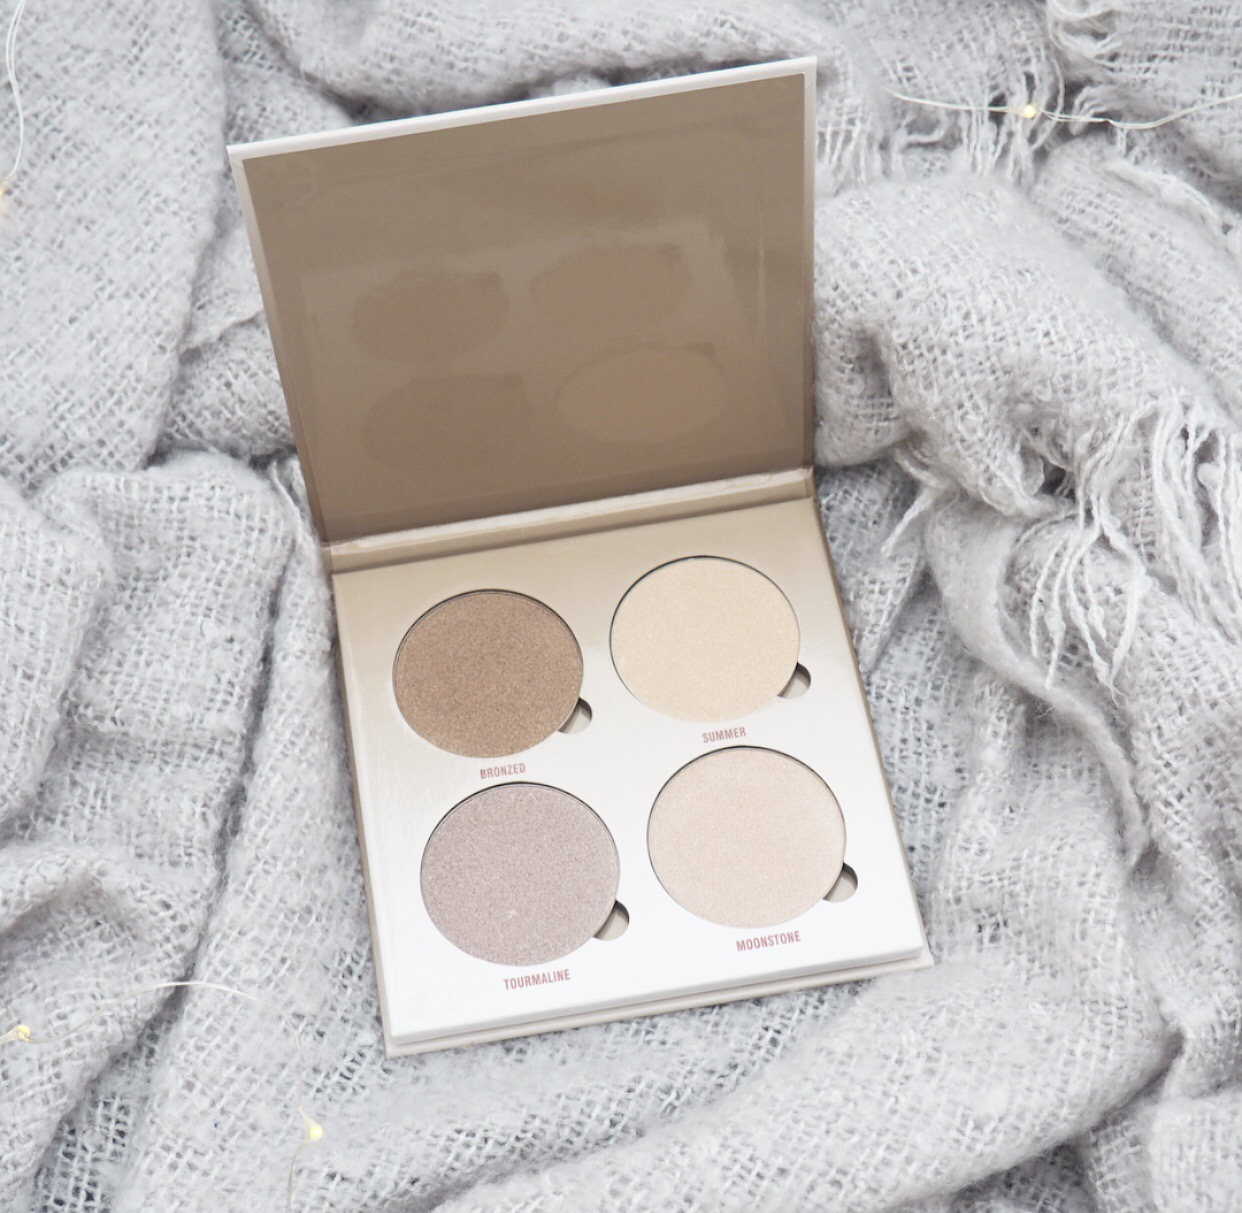 Anastasia Beverly Hills Sunkissed Glow Kit